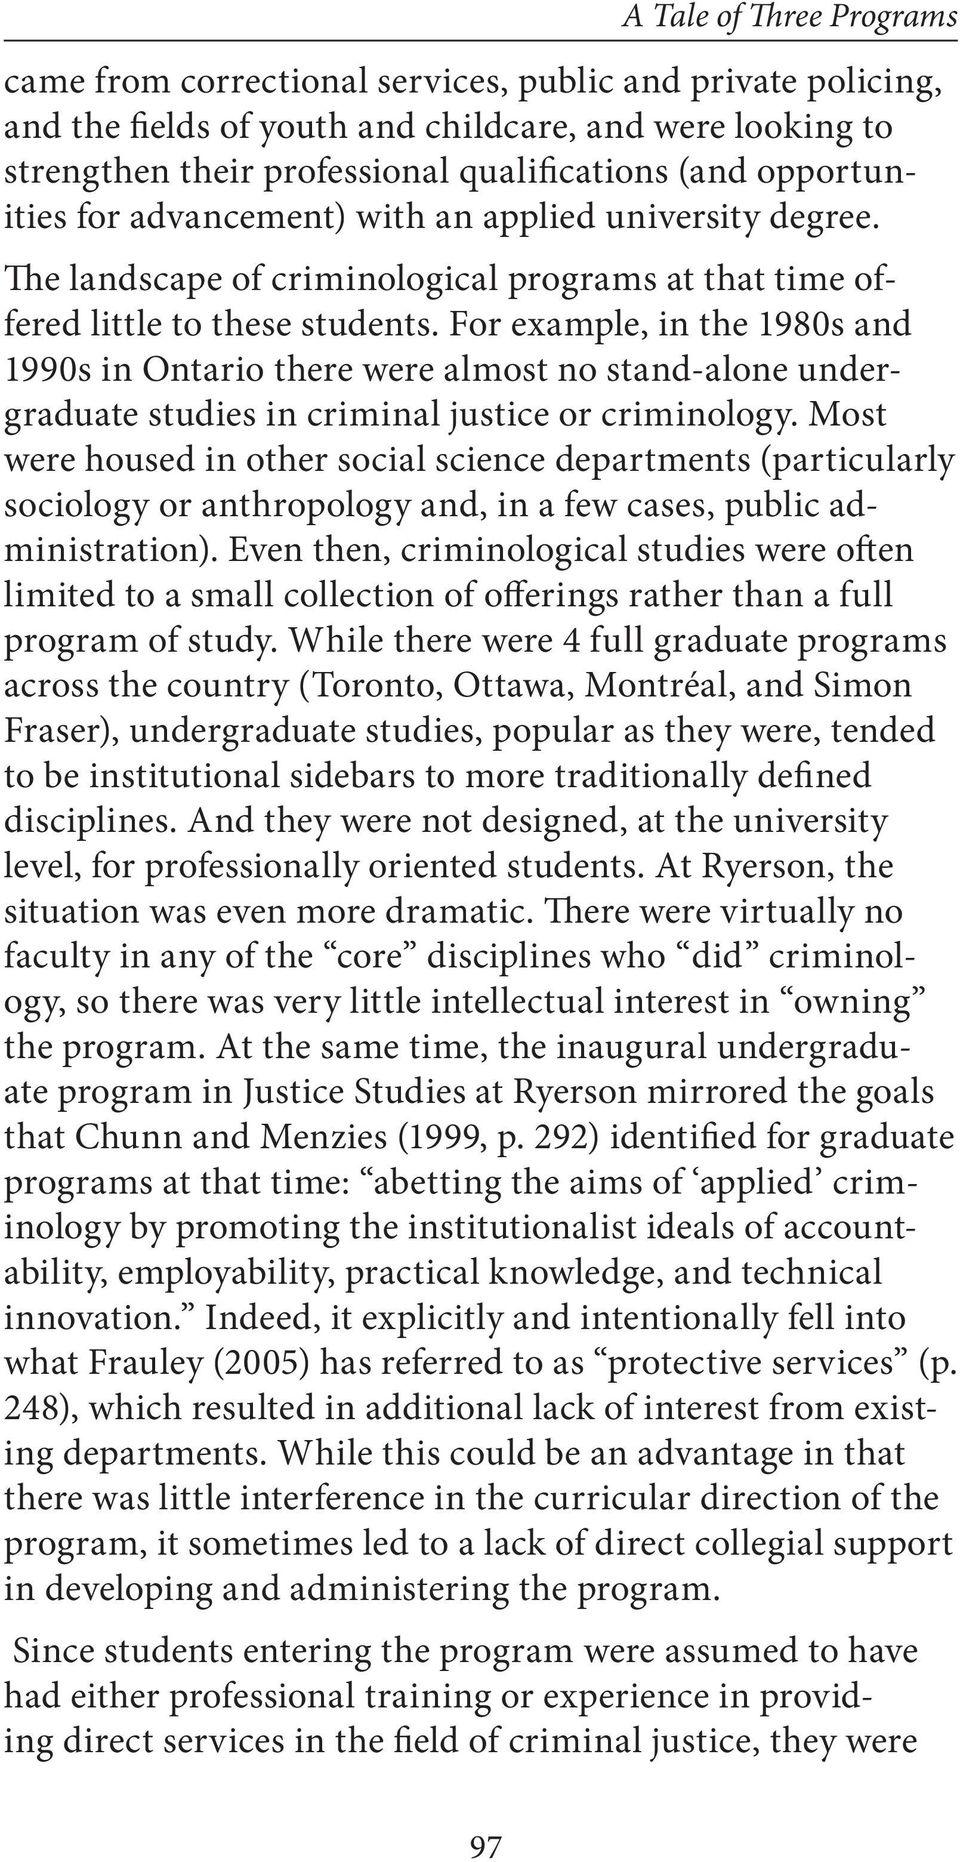 For example, in the 1980s and 1990s in Ontario there were almost no stand-alone undergraduate studies in criminal justice or criminology.